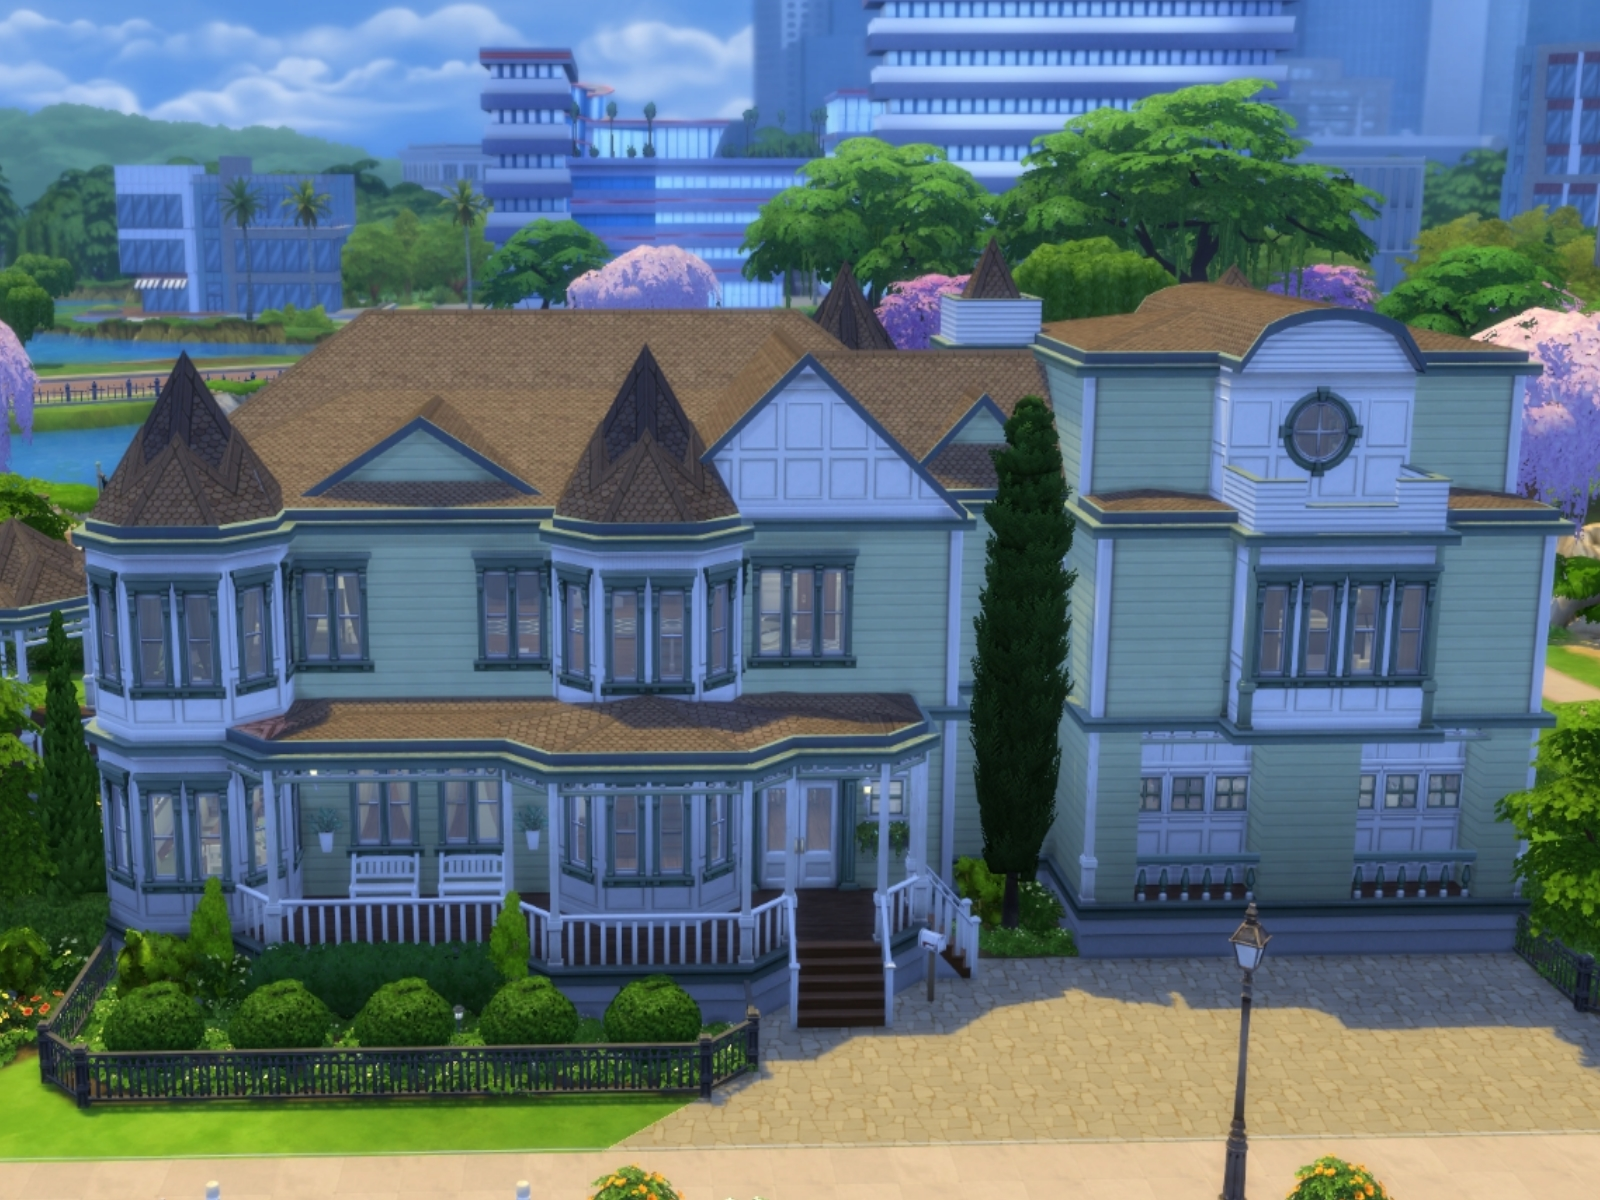 The Sims 4 Houses  www.galleryhip.com - The Hippest Pics